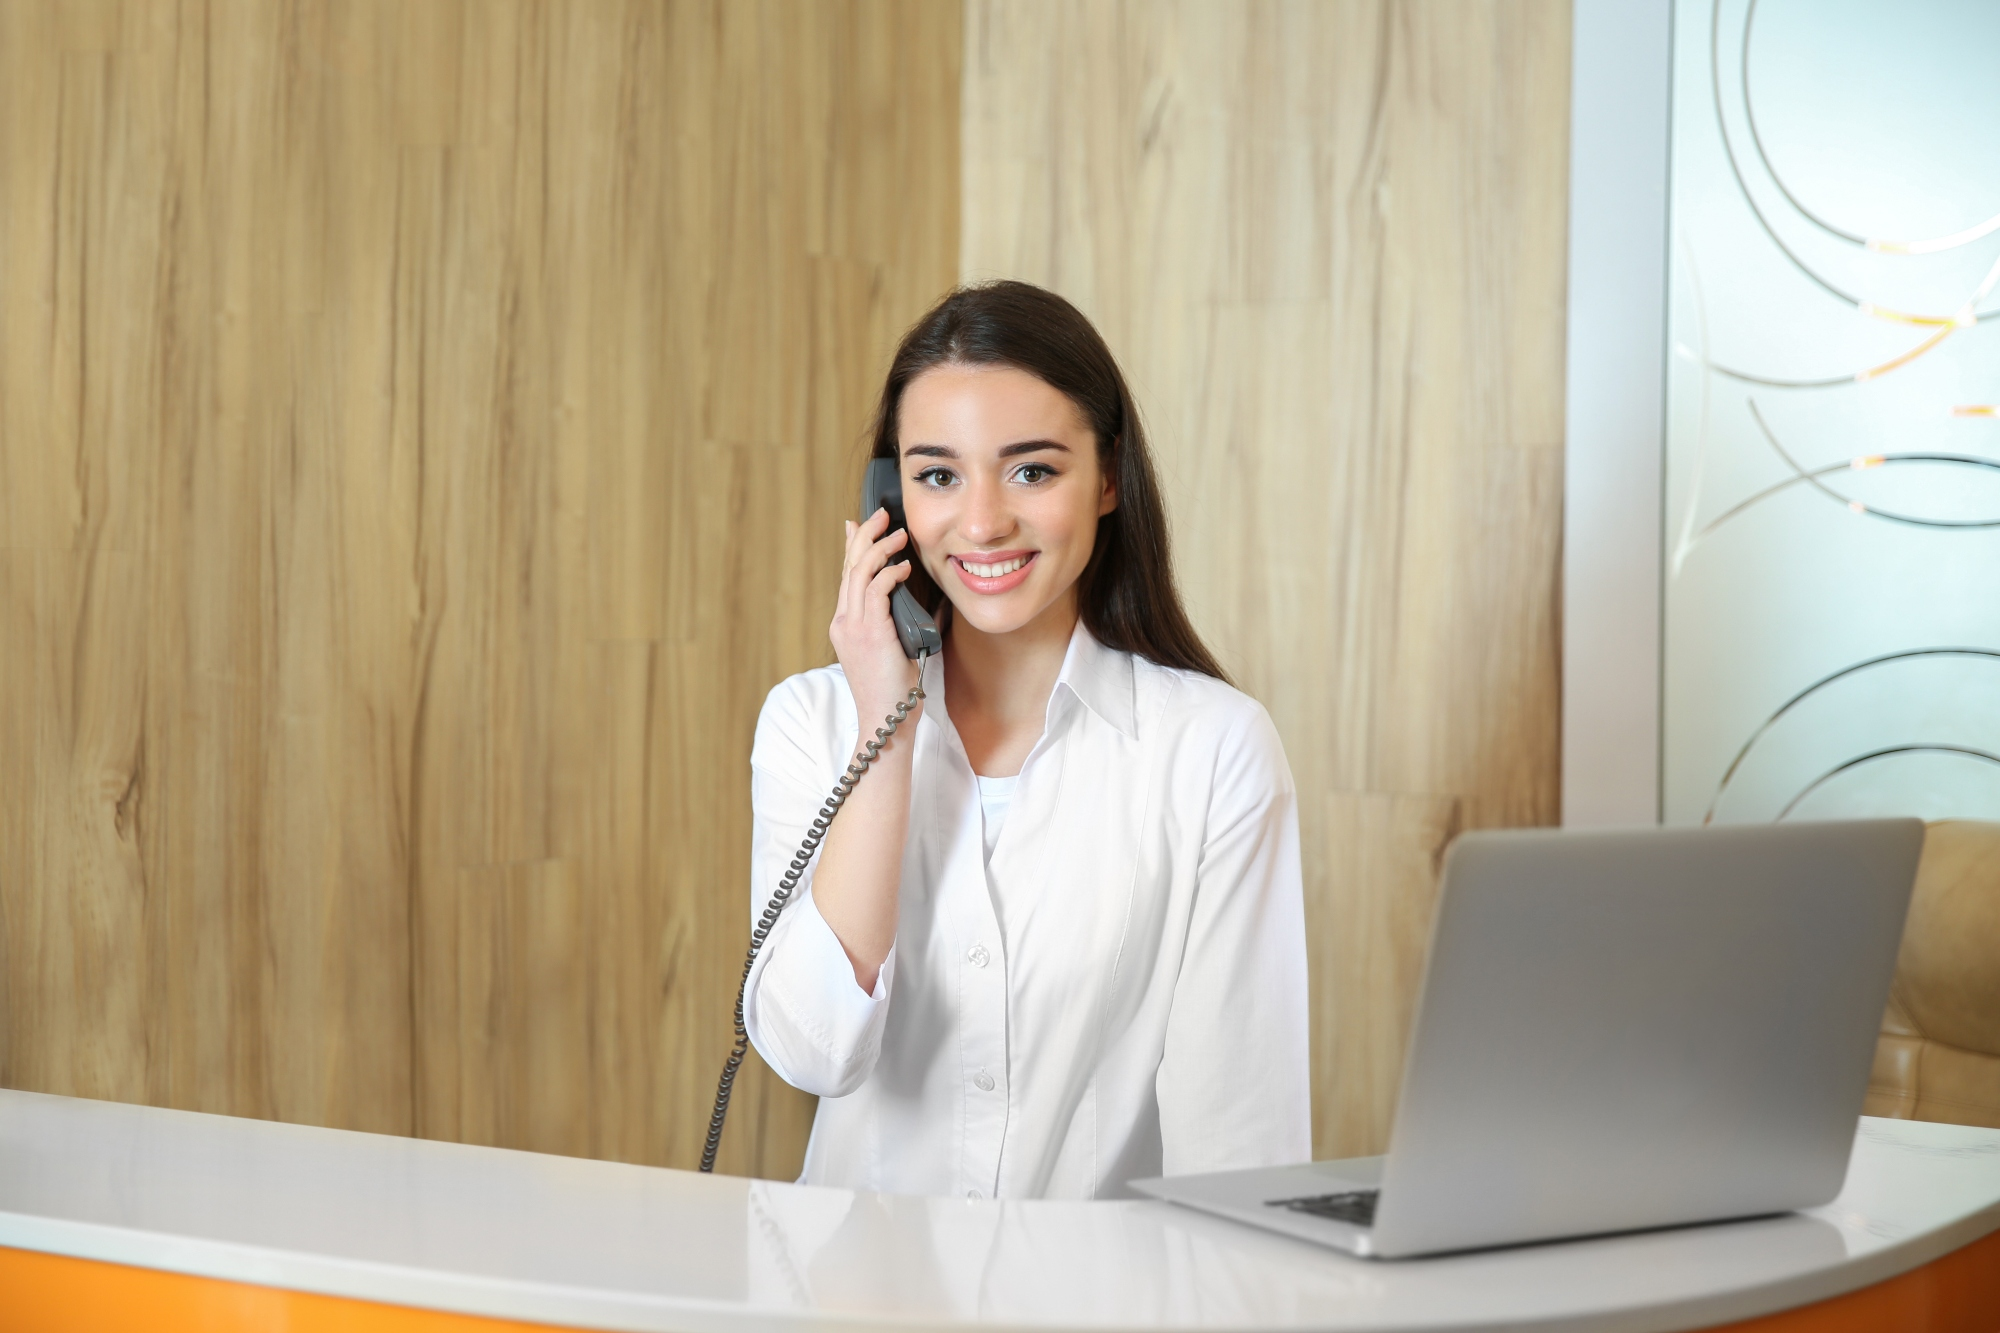 Tips to help dental practice get more phone calls